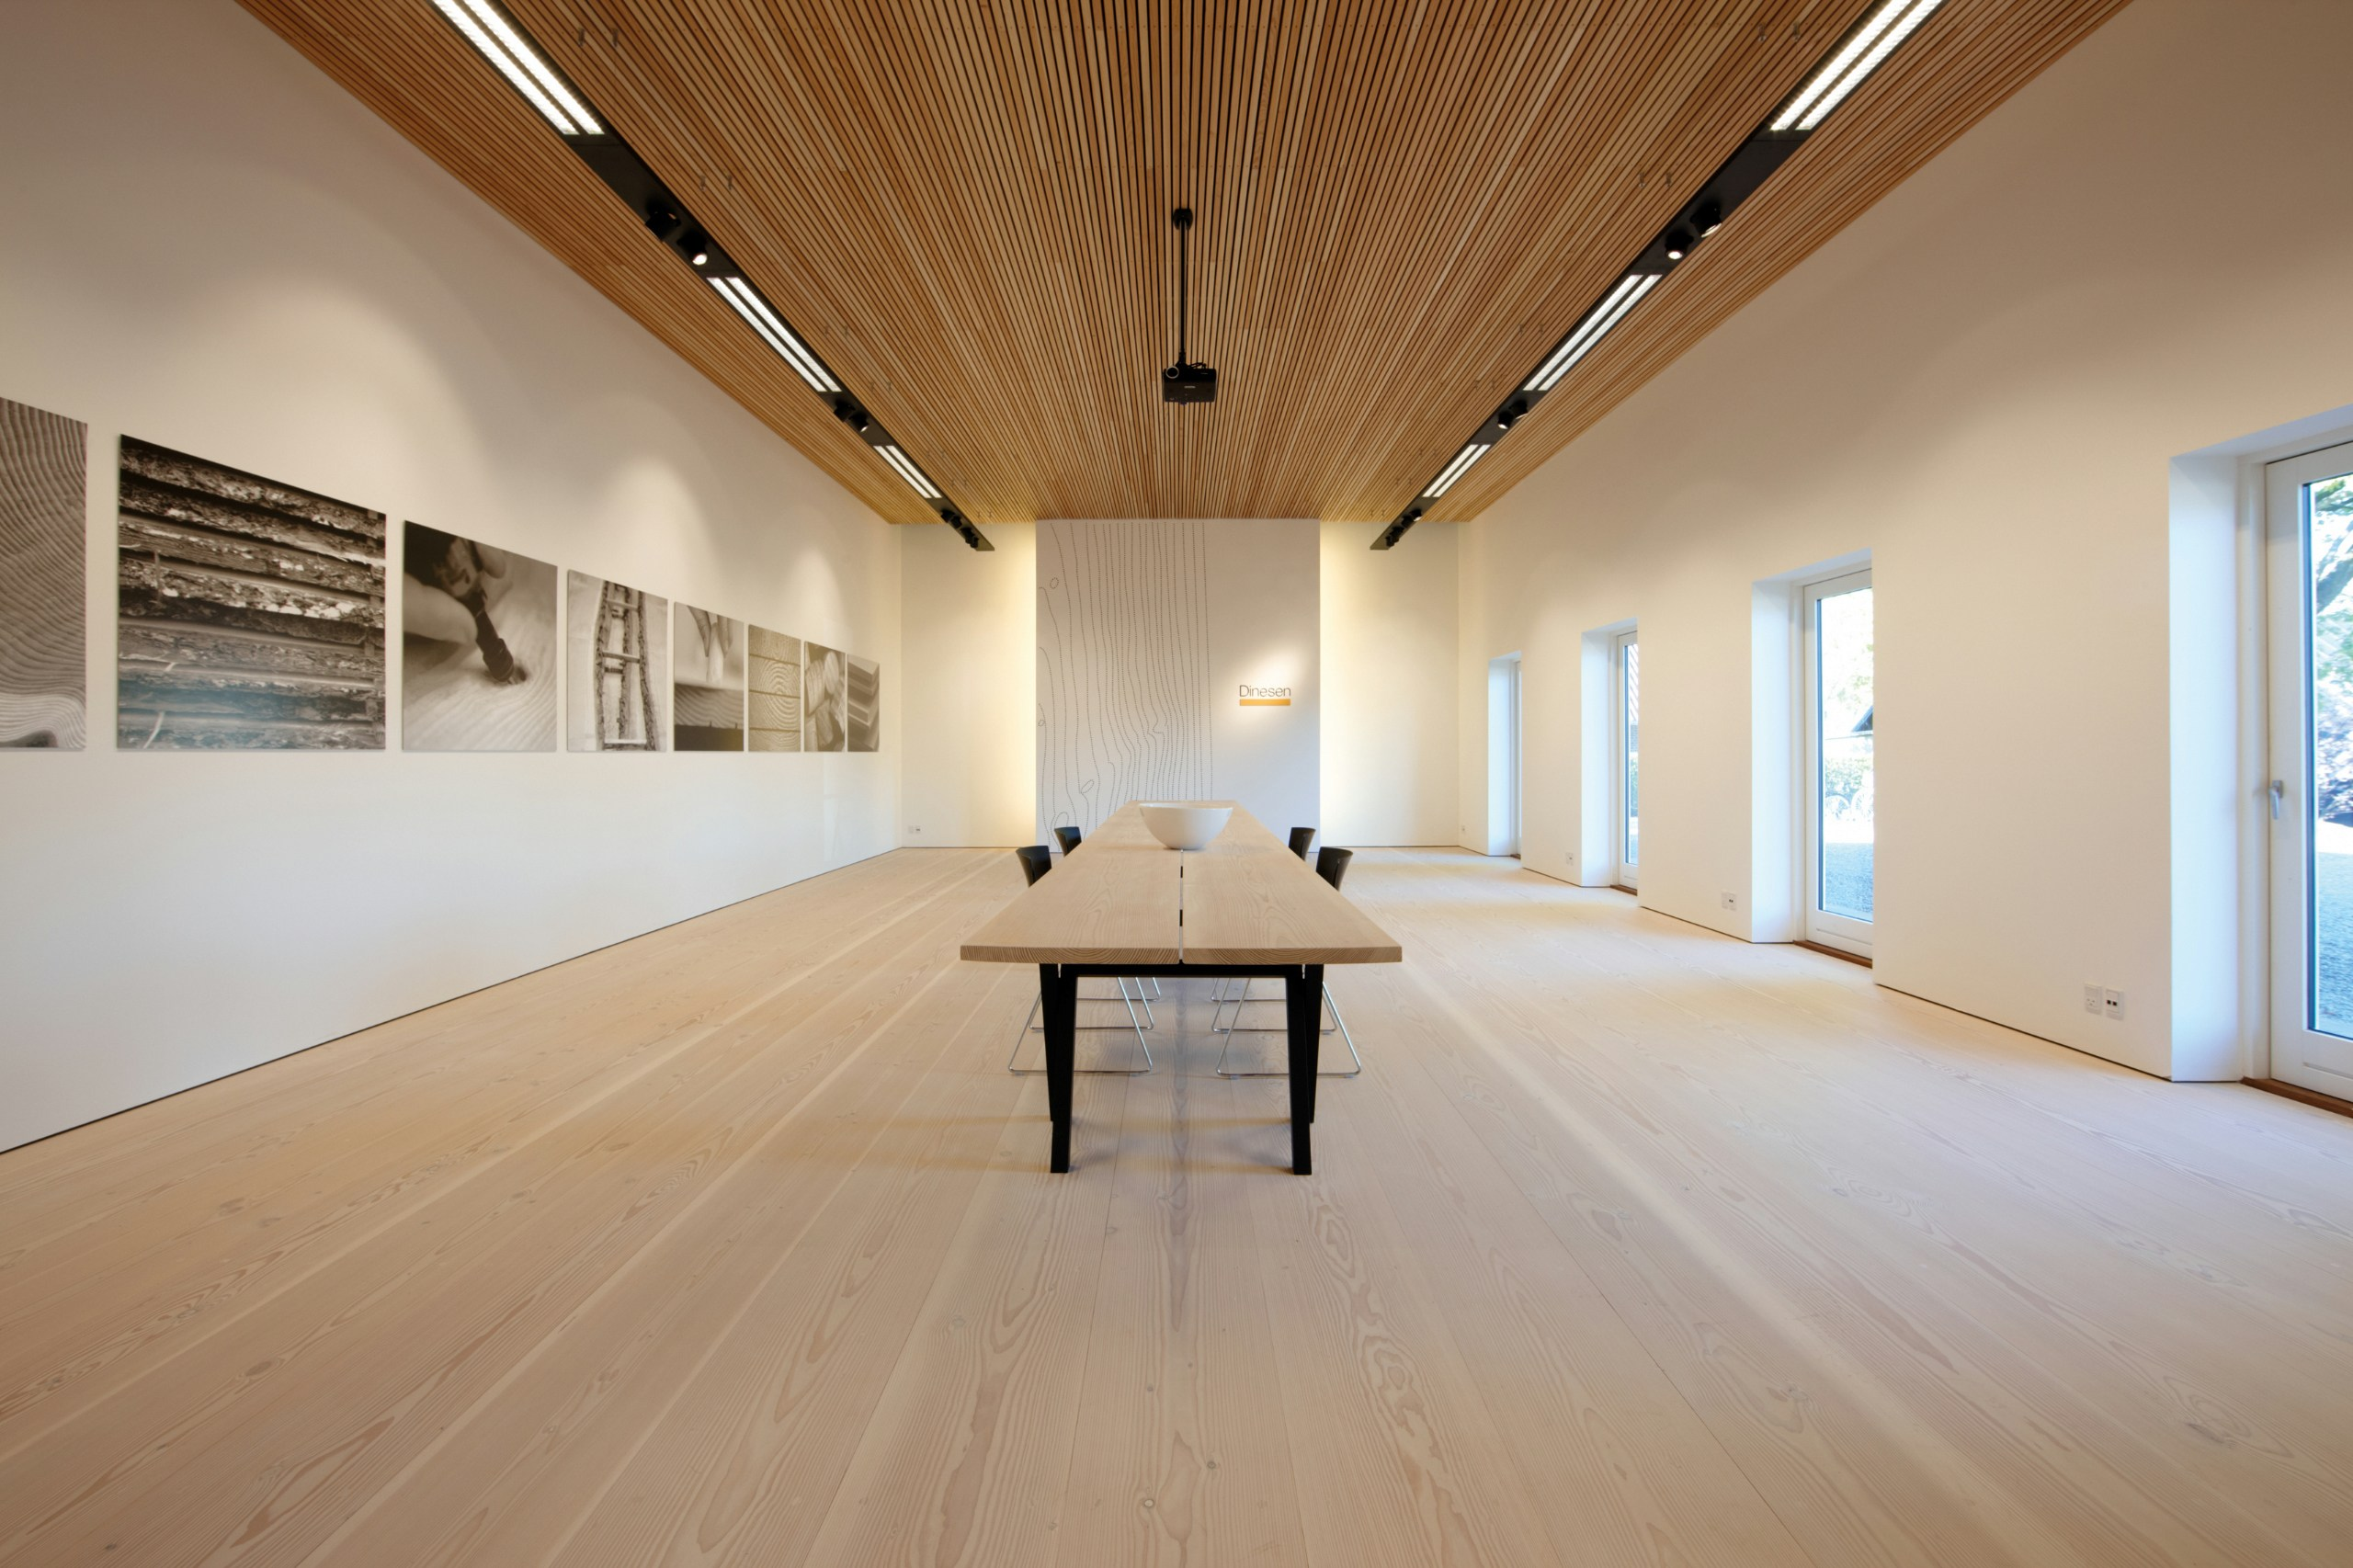 abgeh ngte decke mit holz effekt dinesen ceiling by dinesen. Black Bedroom Furniture Sets. Home Design Ideas